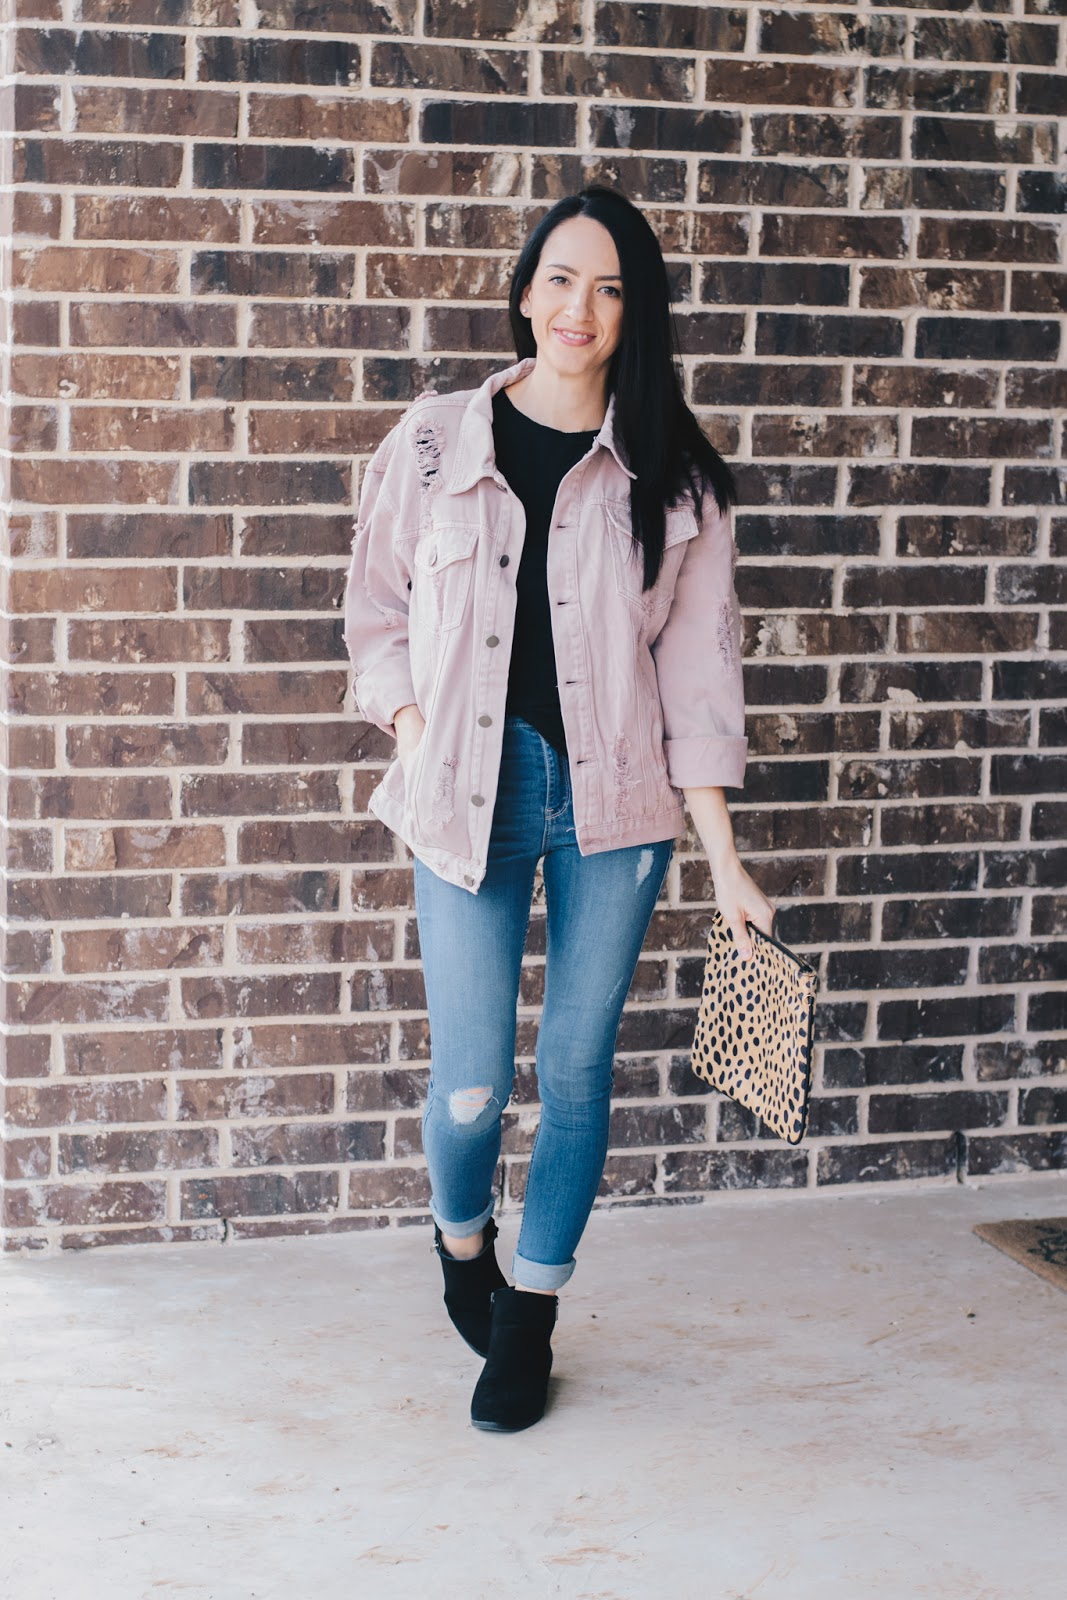 Casual style in denim jacket and booties